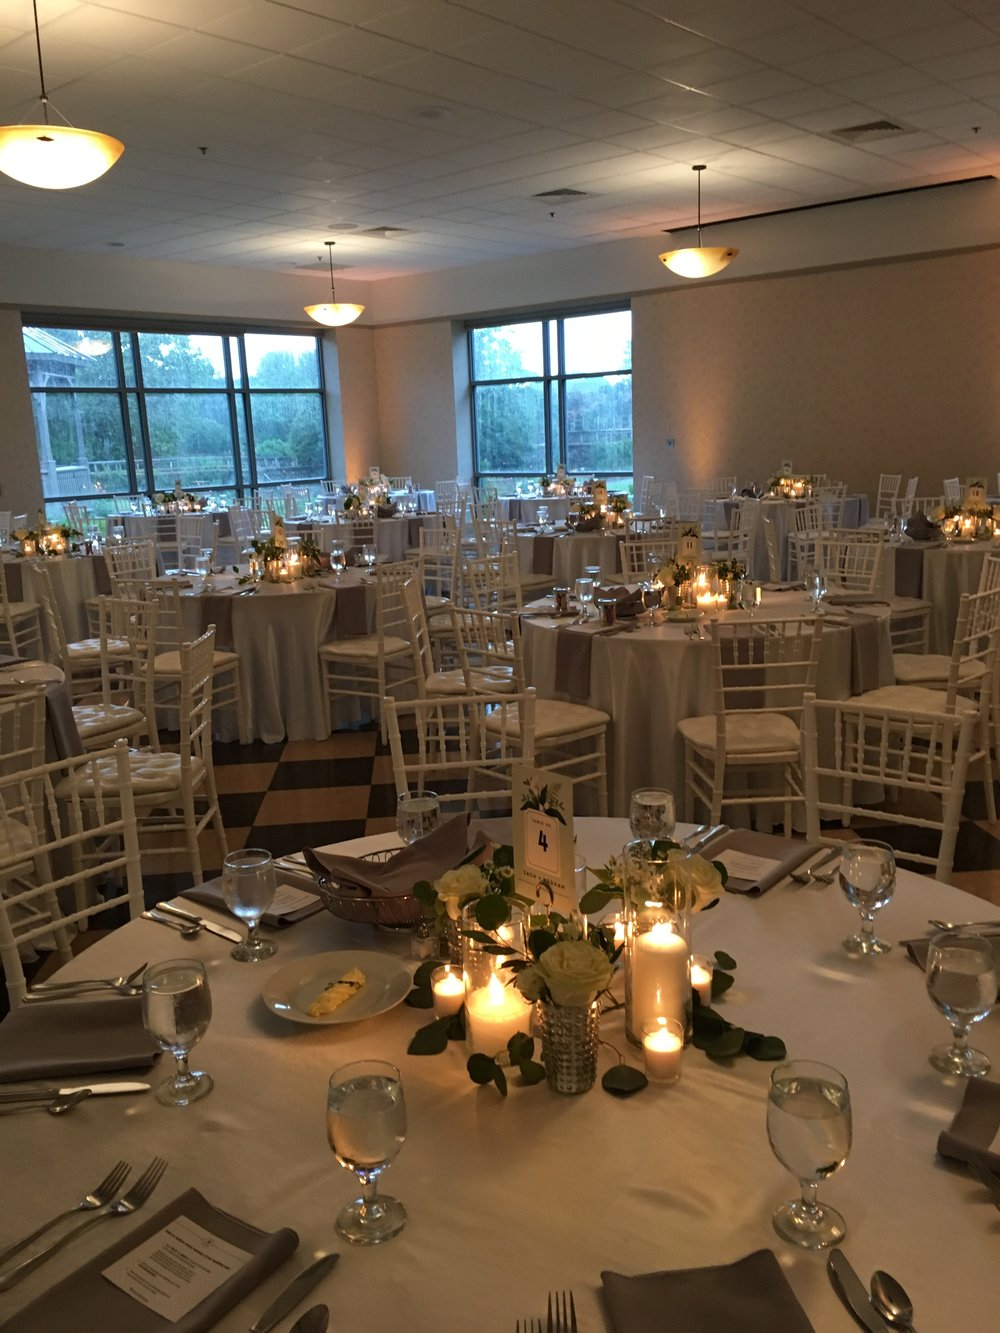 Stage Right Lighting and Chef by Design turned this bare room into a wonderland!